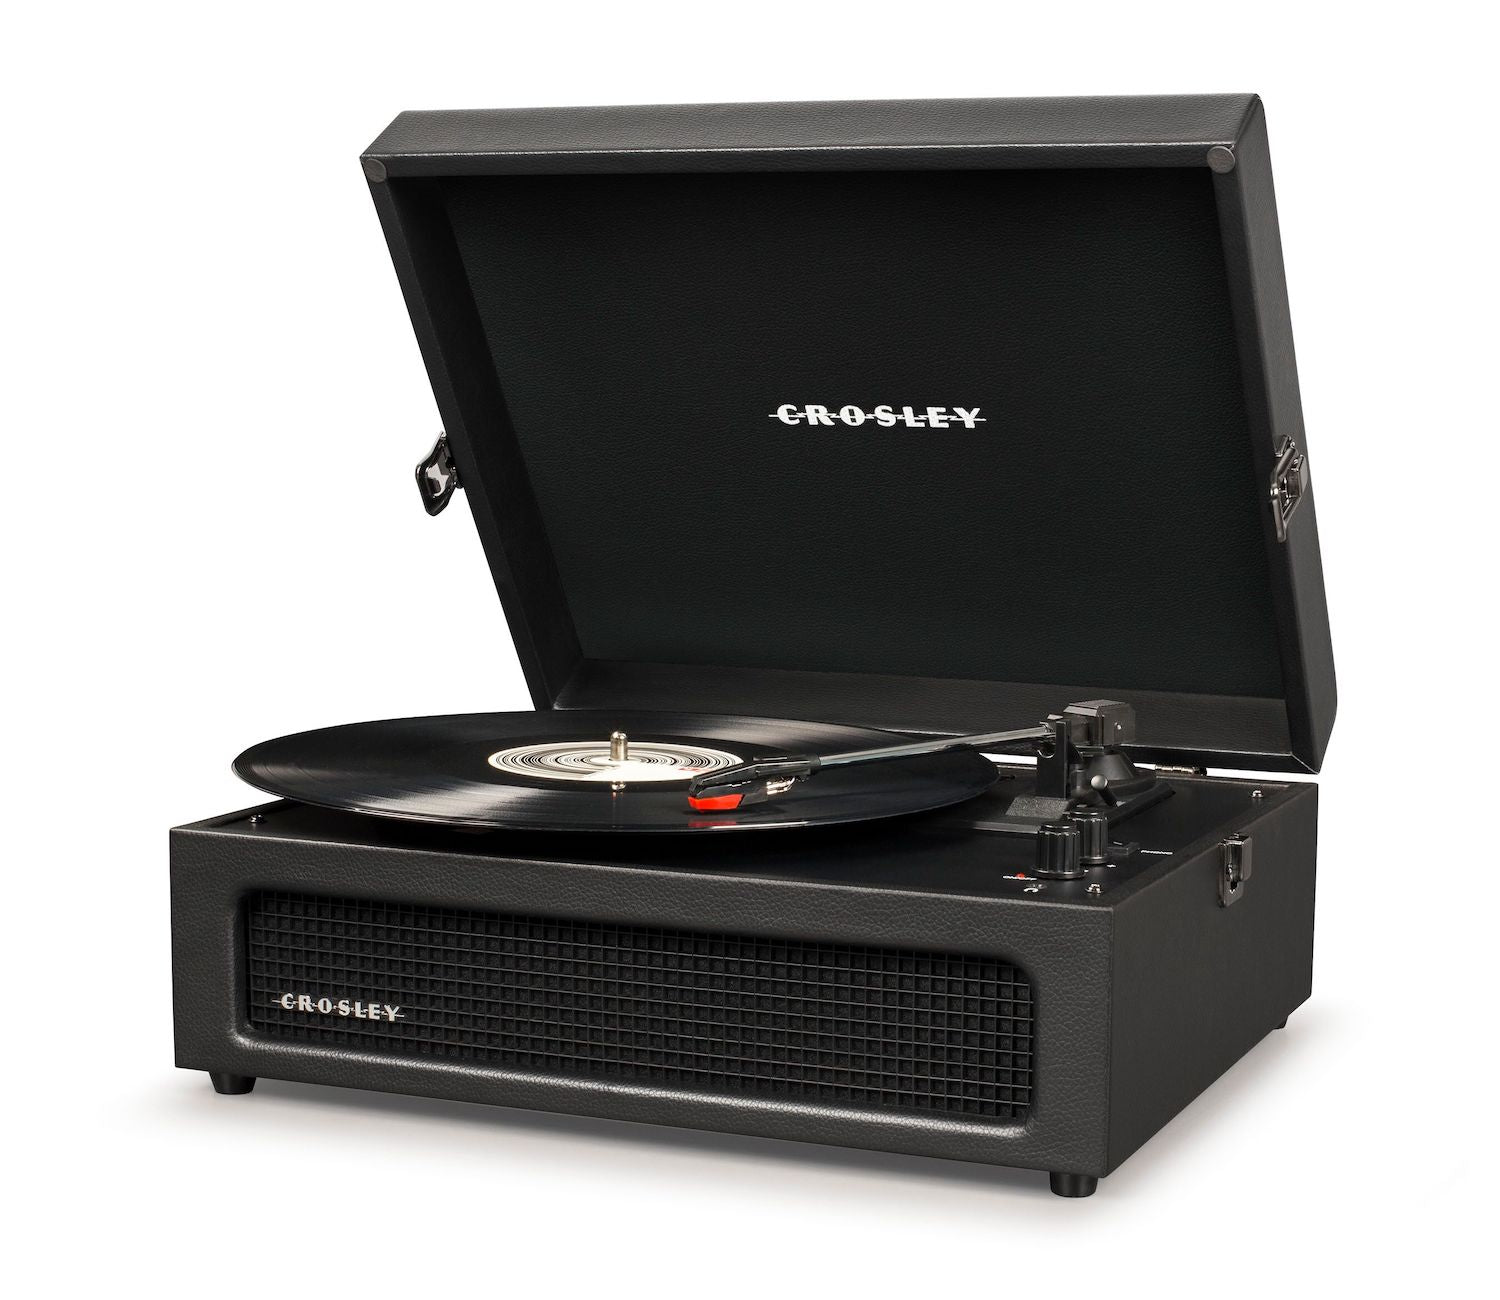 Crosley Vinyl Record Player - Voyager Black